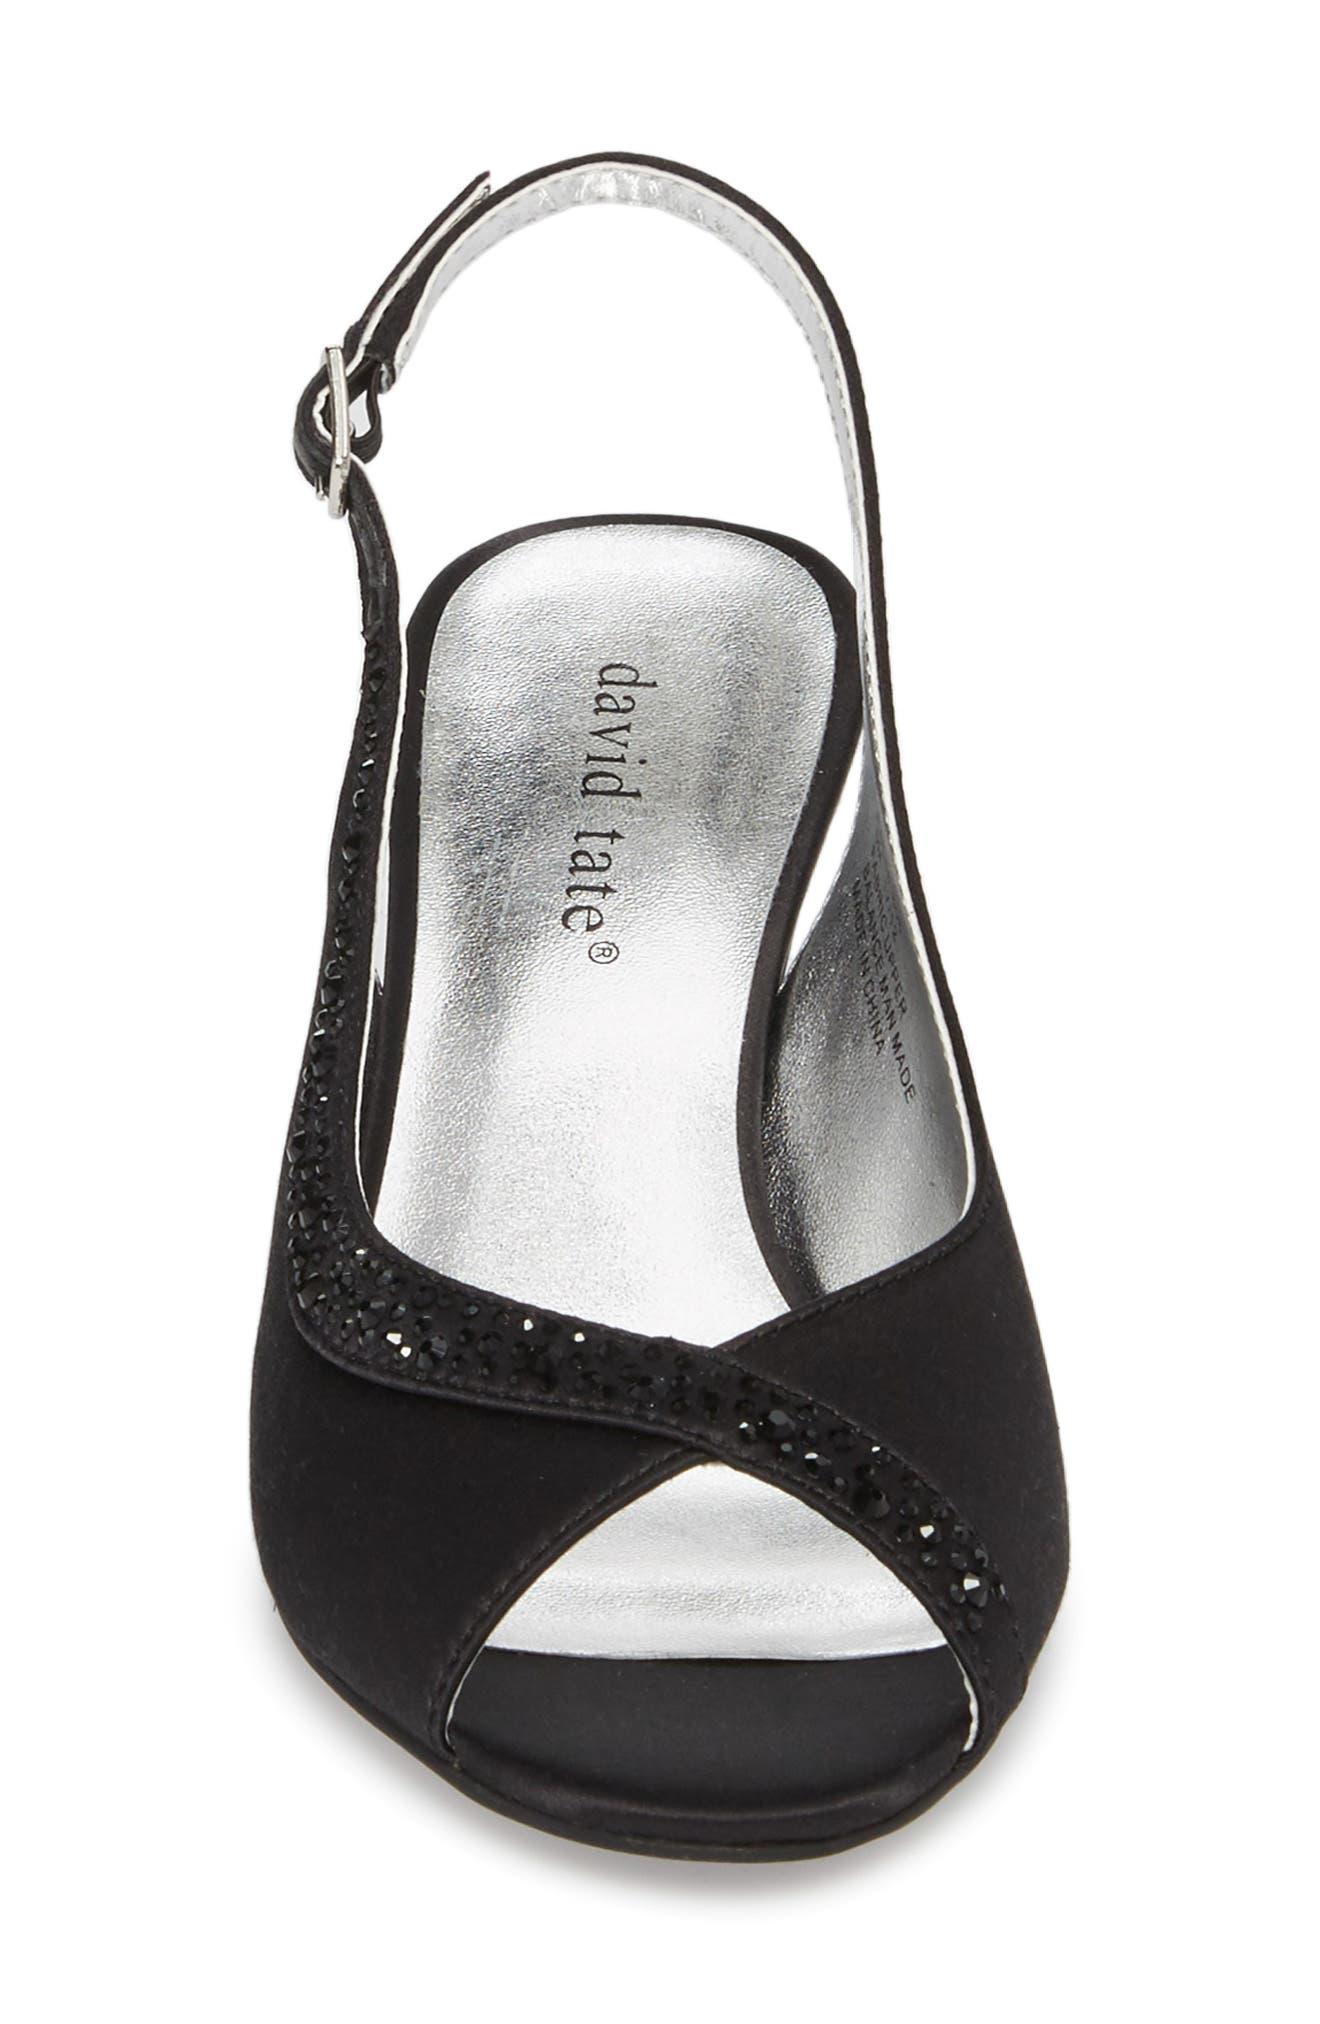 Dainty Slingback Sandal,                             Alternate thumbnail 4, color,                             Black Satin